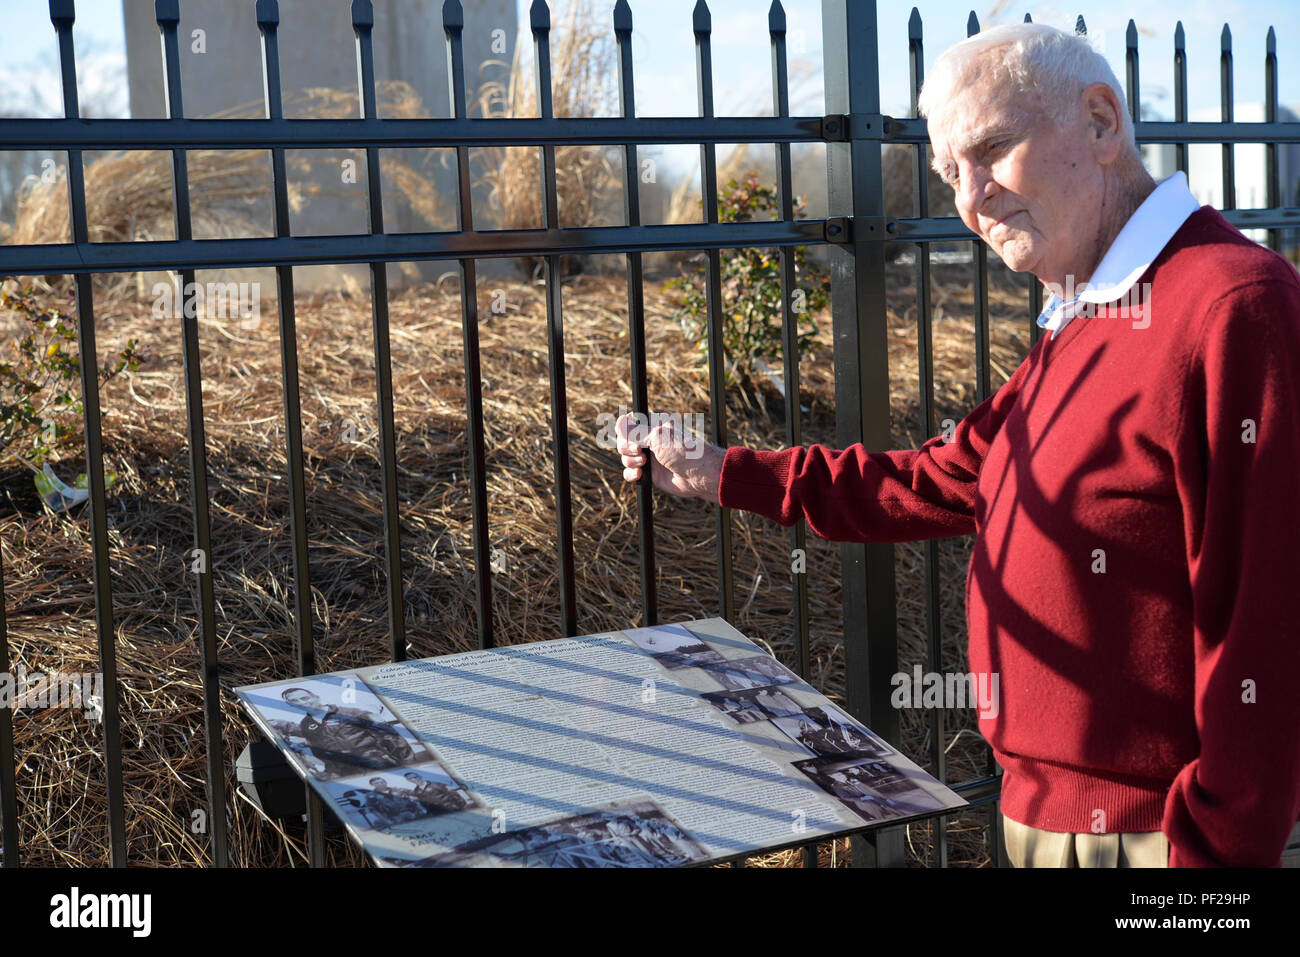 Col. Carlyle Harris reflects on his experience as a prisoner of war in Vietnam at a monument Feb. 3, 2016, outside Tupelo, MS where his story is portrayed on a plaque near an F-105 Thunderchief like the one he was shot down in on Apr. 4, 1965.  Harris was held for more than eight years while his wife raised their three children alone in the U.S. - Stock Image